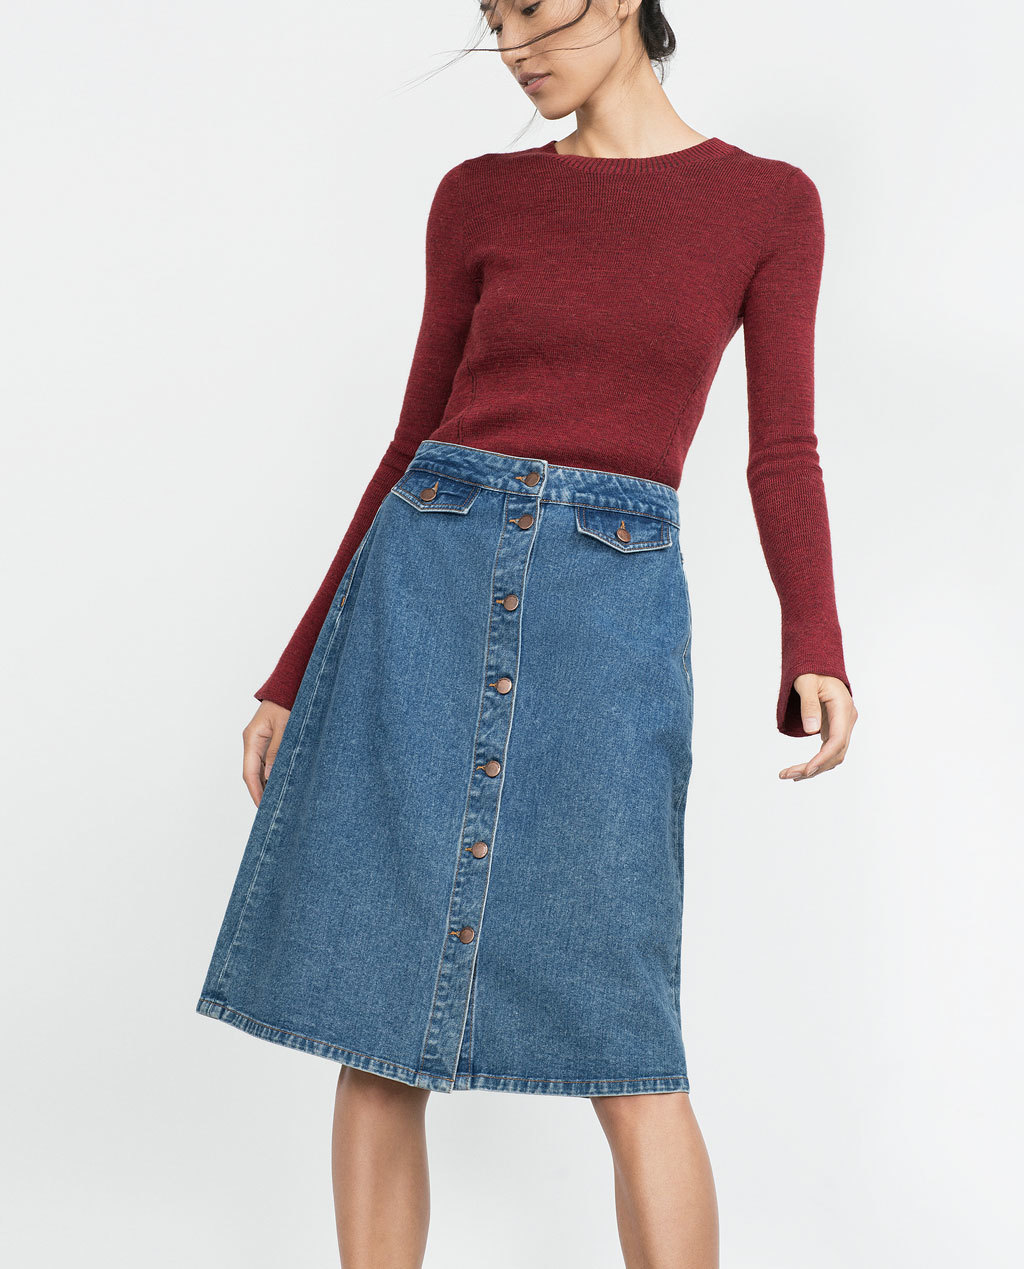 Vintage Style Denim Skirt - length: below the knee; pattern: plain; fit: loose/voluminous; waist: high rise; predominant colour: denim; occasions: casual; style: a-line; fibres: cotton - 100%; texture group: denim; pattern type: fabric; season: a/w 2015; wardrobe: basic